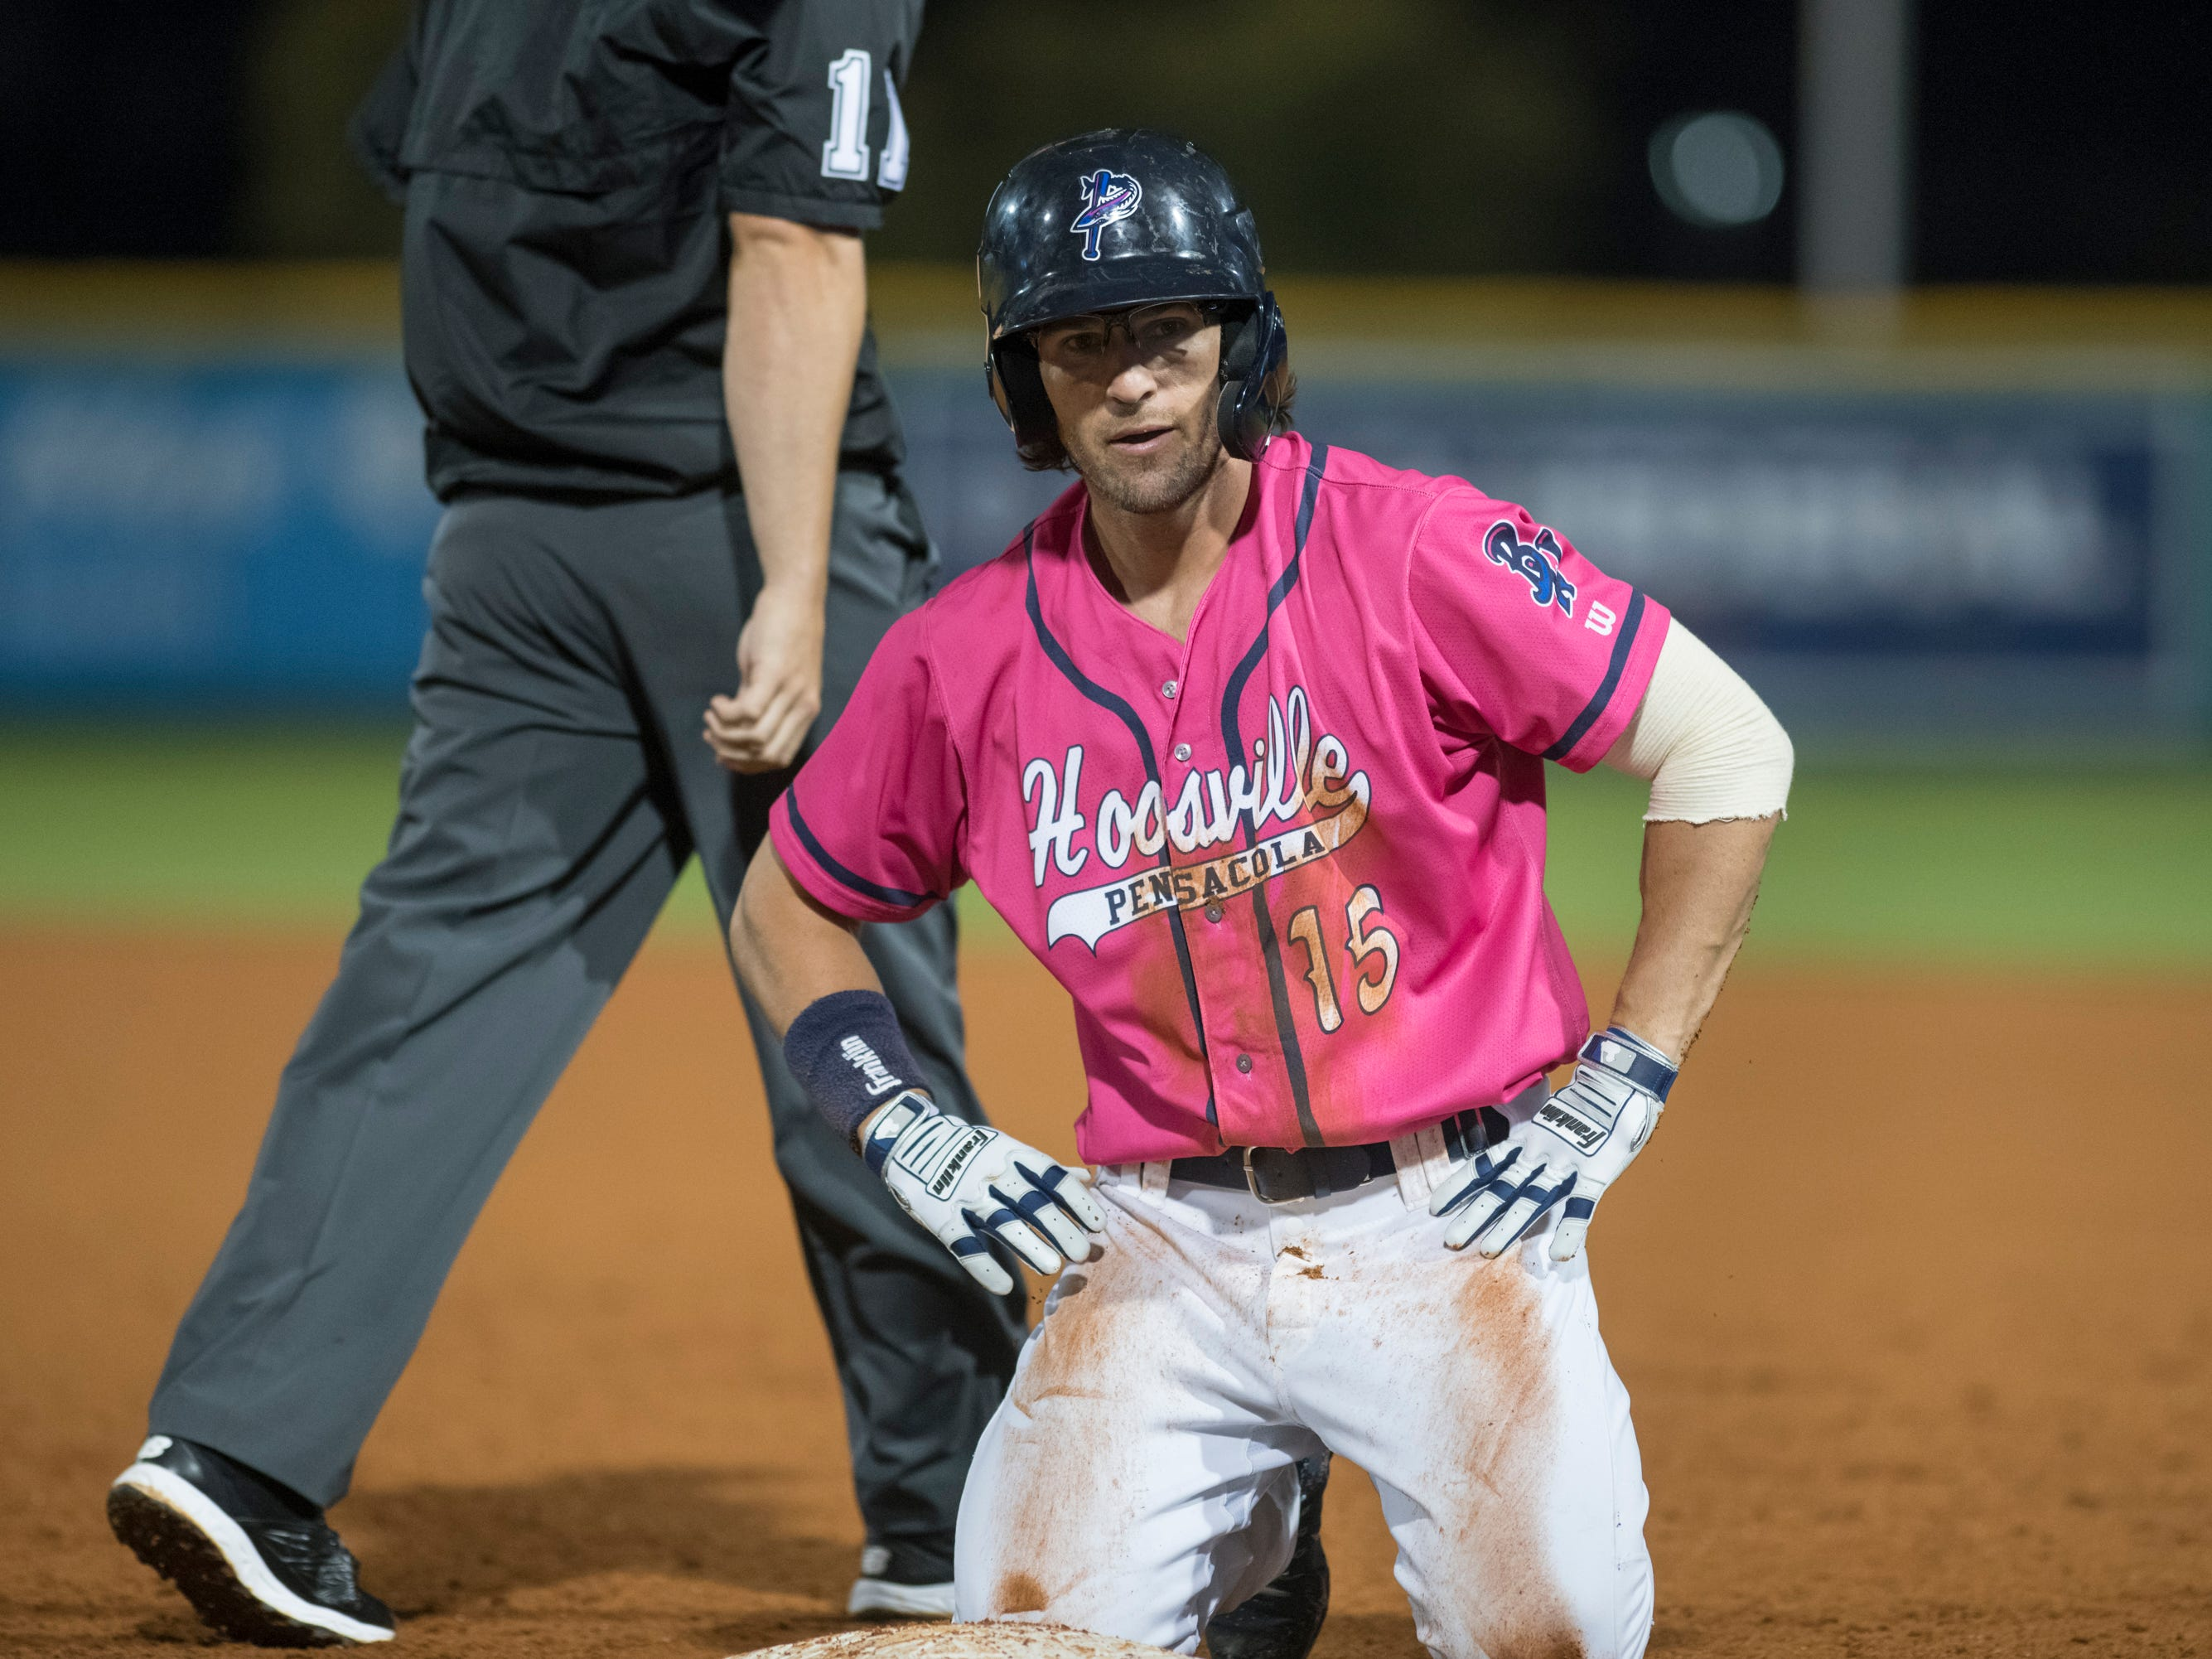 Drew Maggi (15) reacts to getting caught on too wide of a turn after singling to right field for the last out of the inning during the Jacksonville Jumbo Shrimp vs Pensacola Blue Wahoos baseball game in Pensacola on Friday, April 12, 2019.